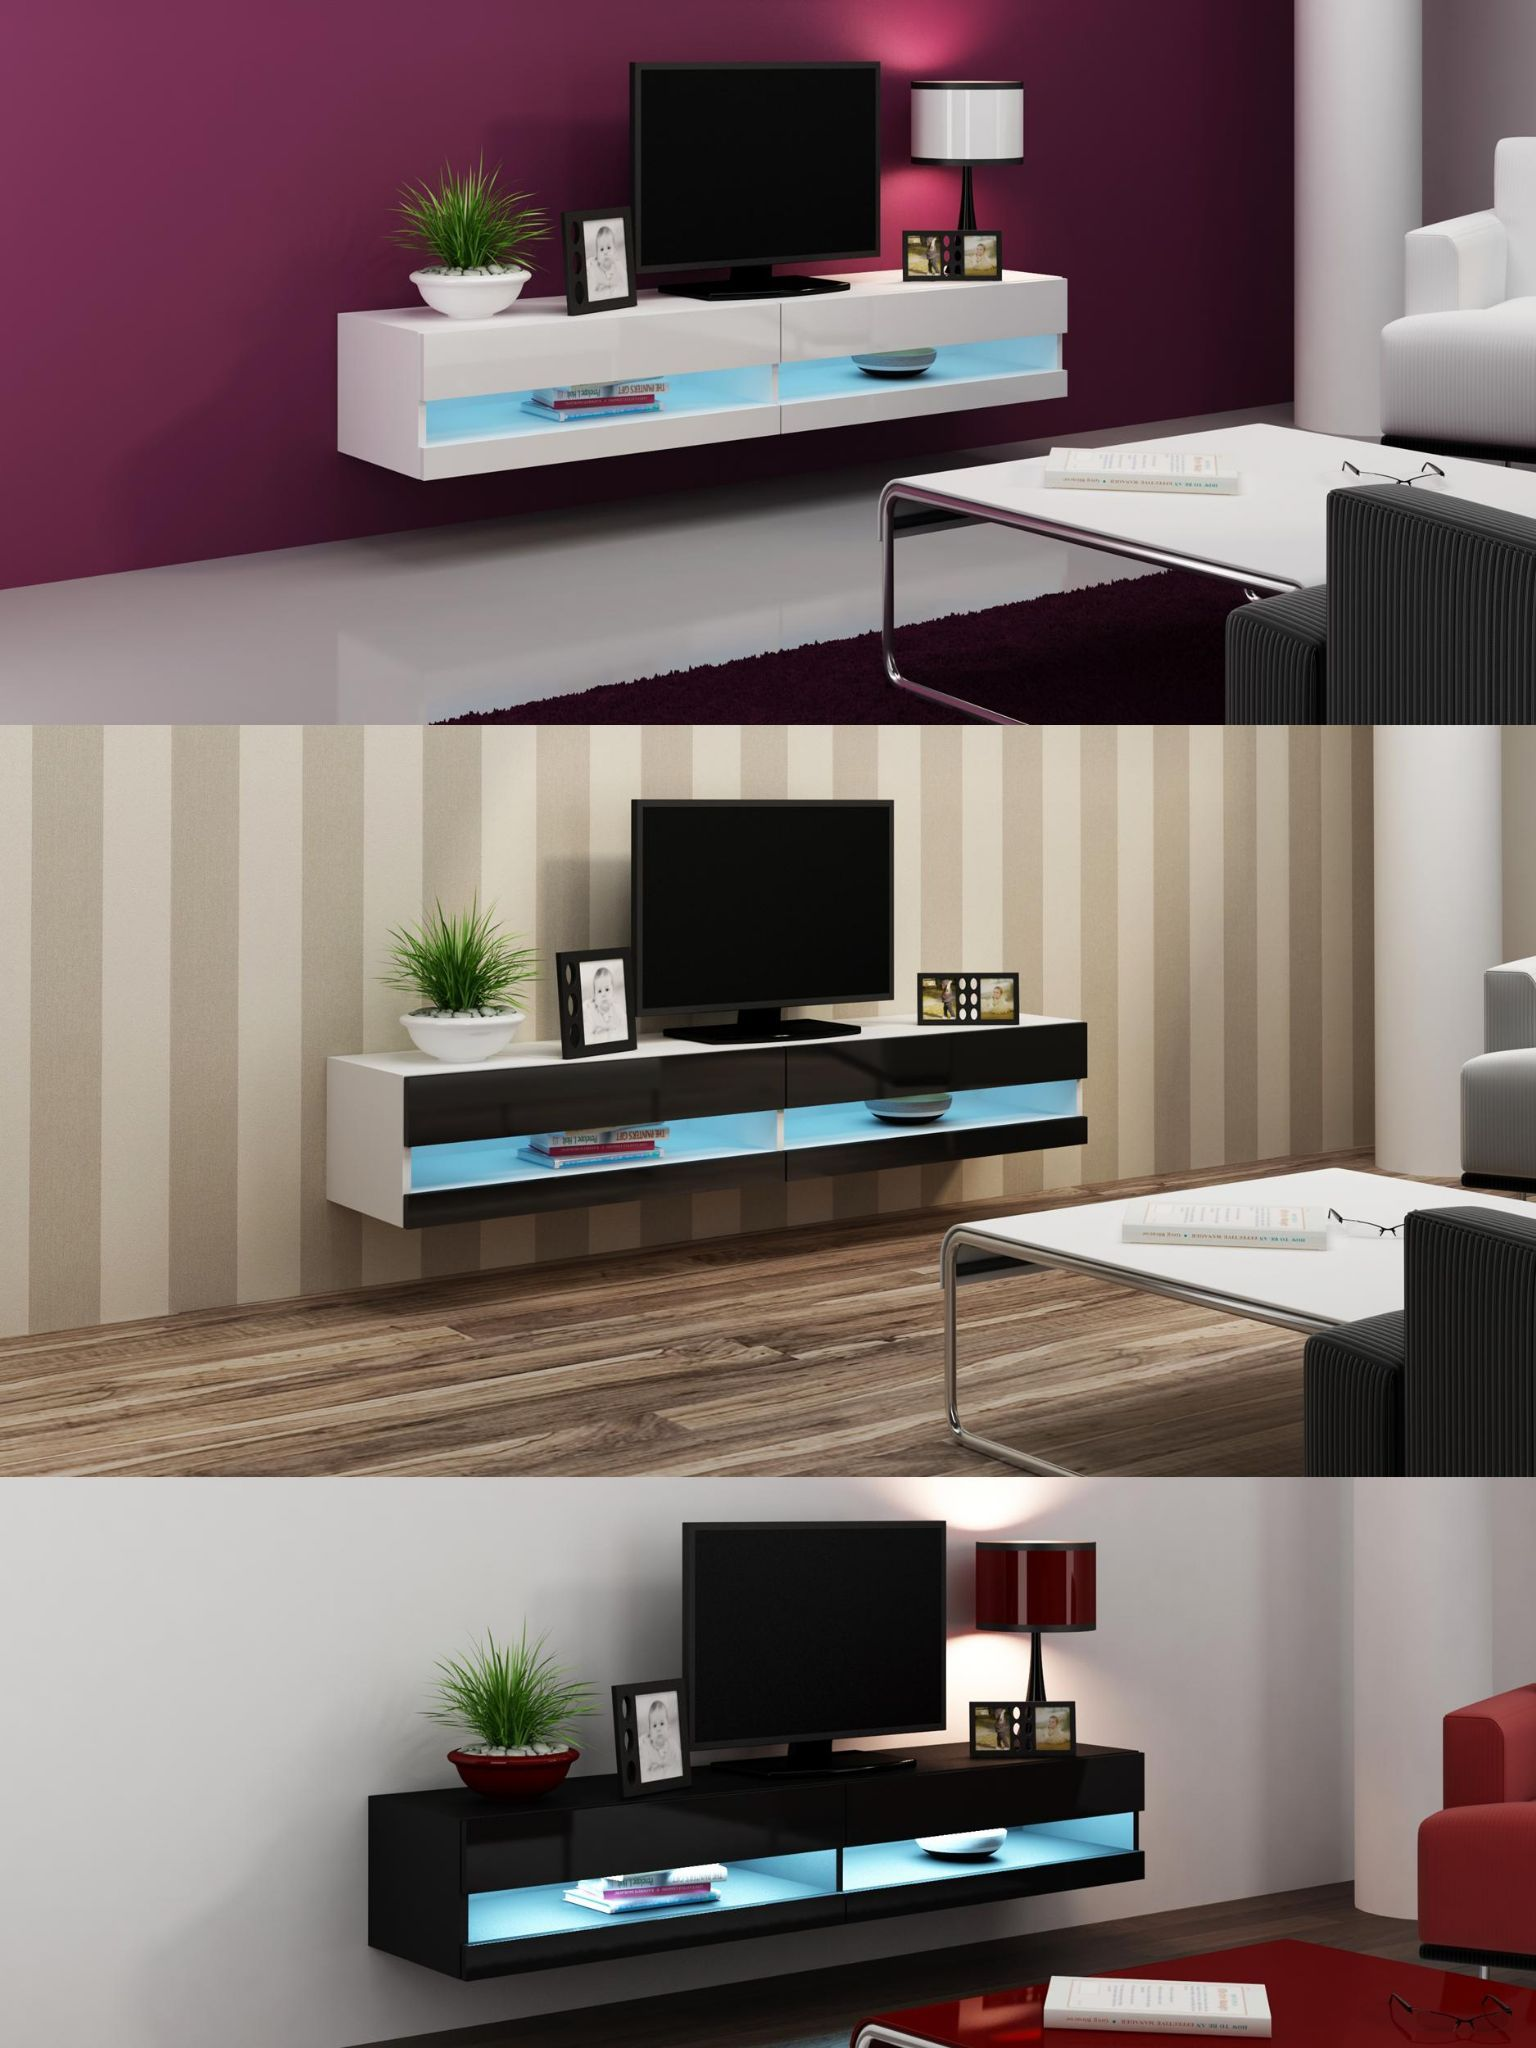 Wall Tv Unit Design Tv Unit: Caspian® VIGO High Gloss TV Cabinet With LED Lights